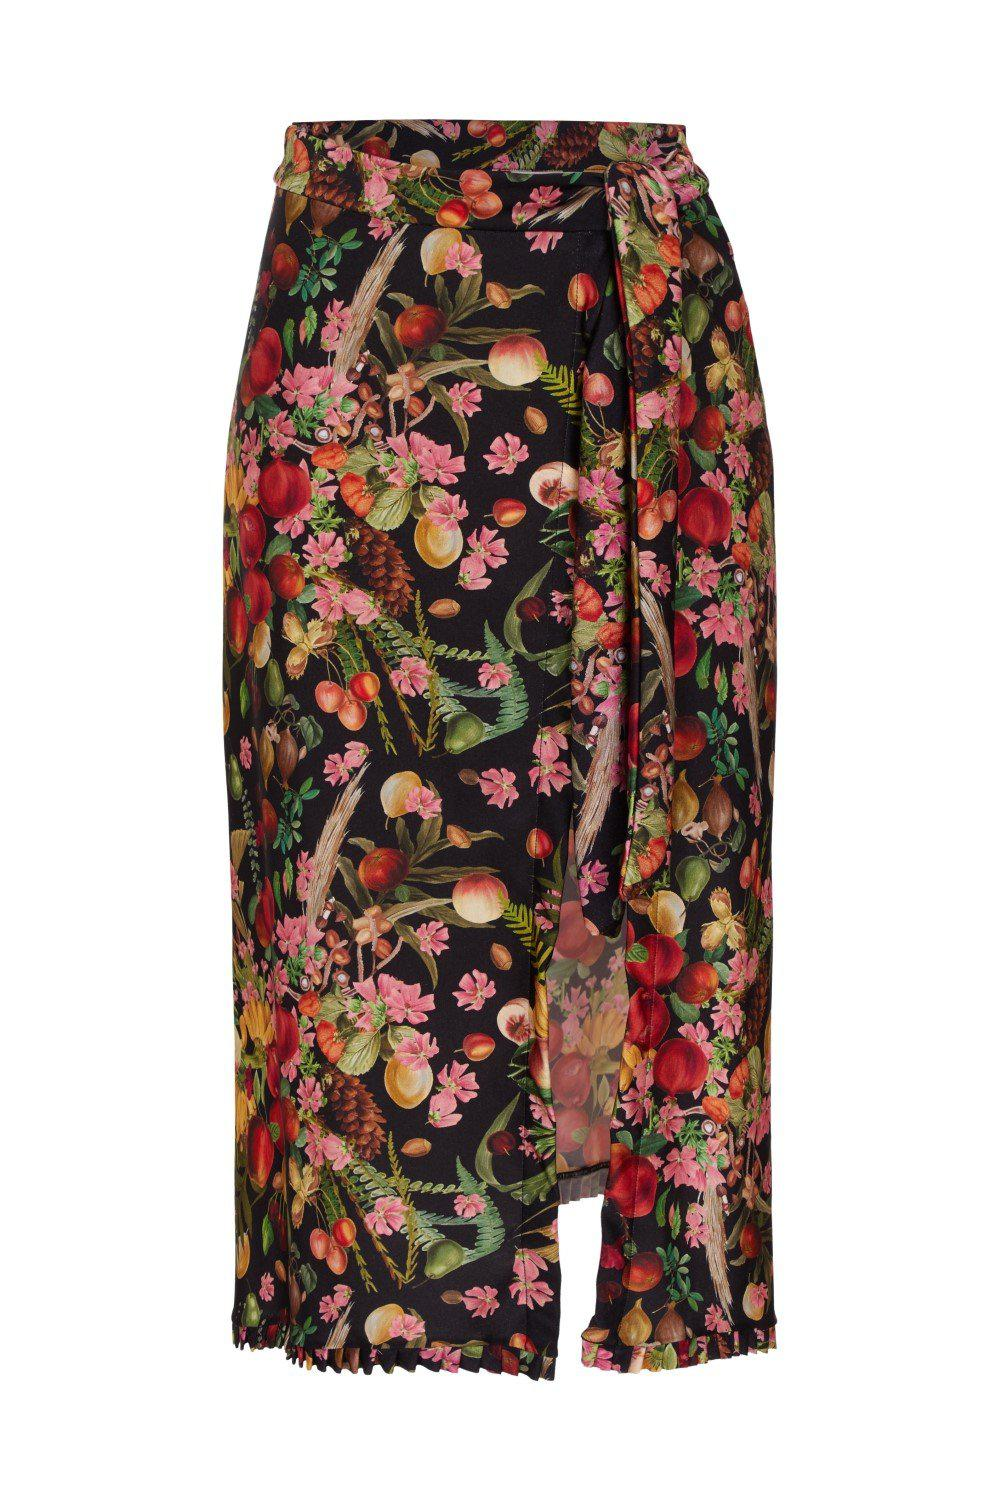 Fruits Exotiques Pareo Skirt with Frills 3